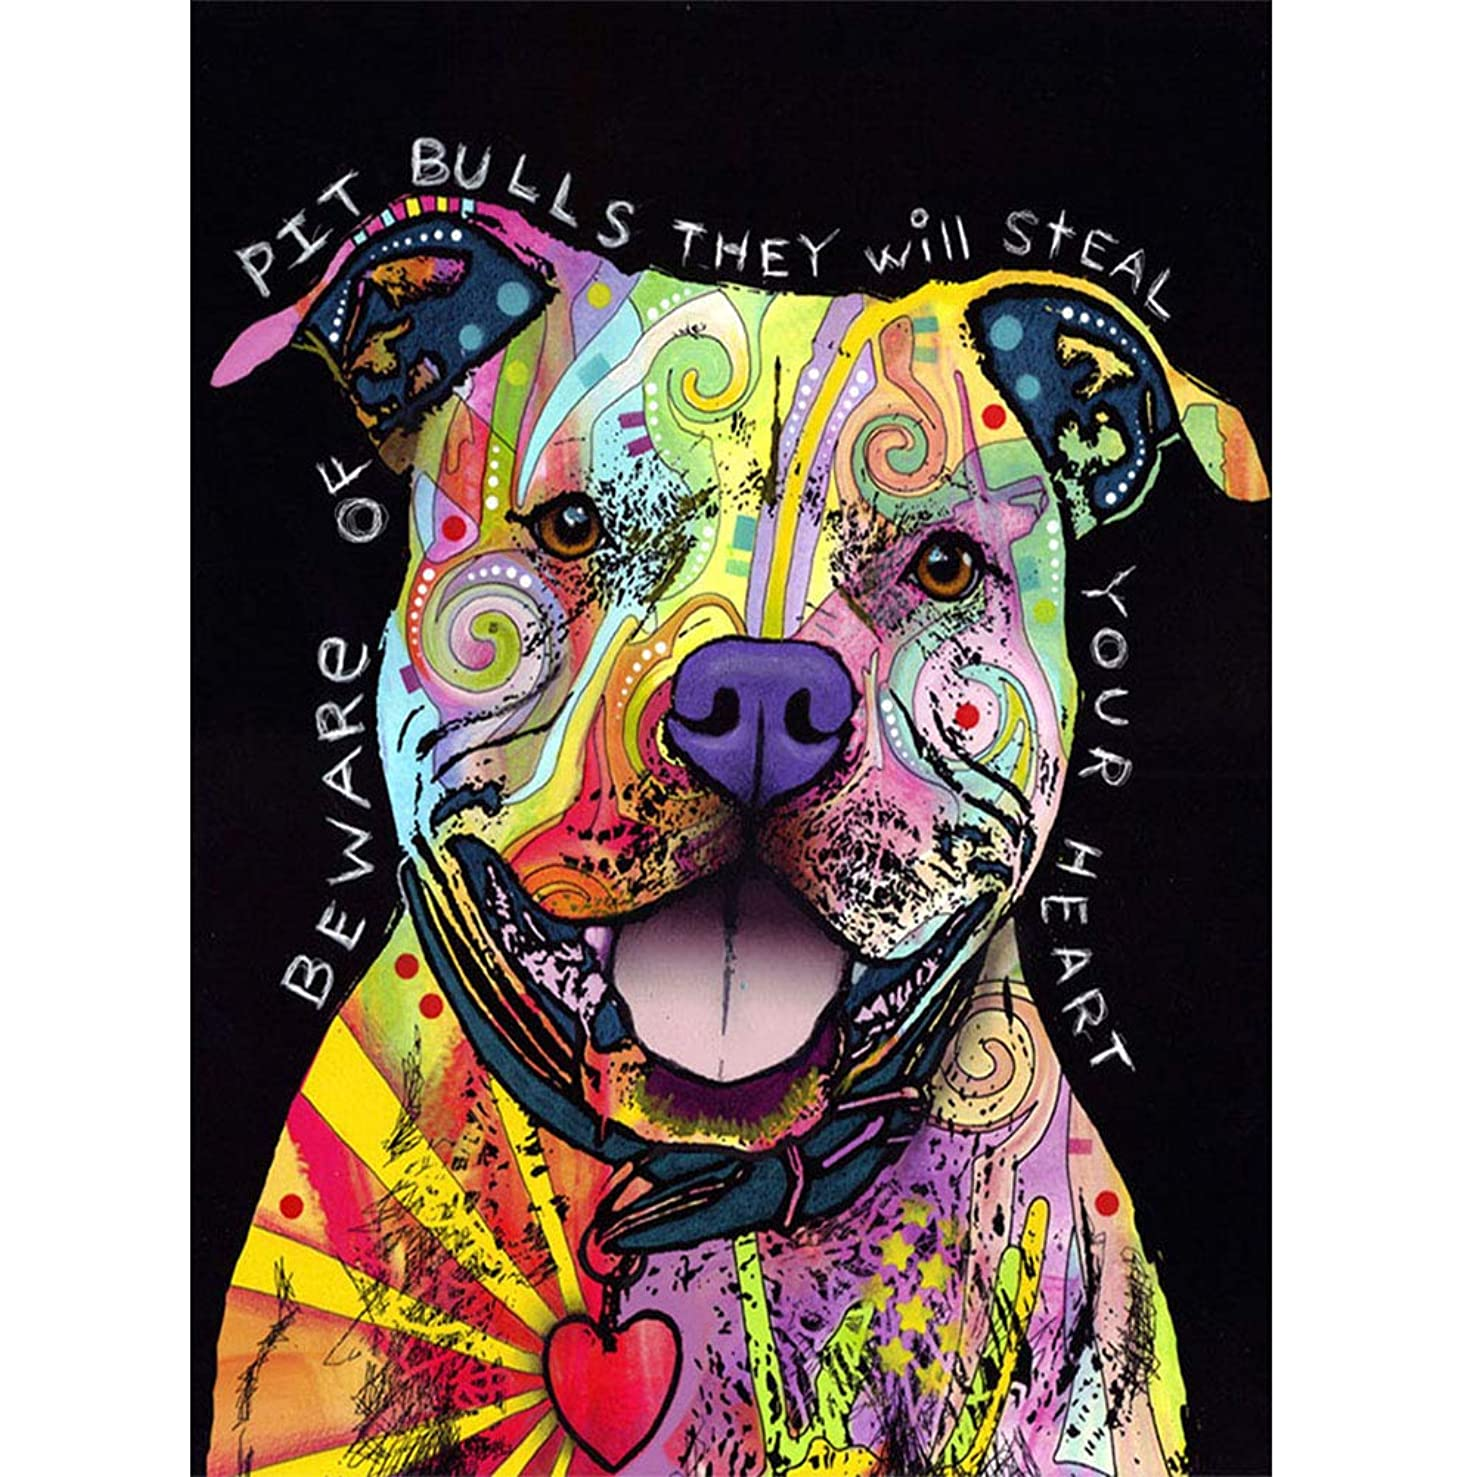 DIY 5D Diamond Painting Kit for Kids Adults,Bulldog Paint-by-Number Diamond Art Craft Pictures for Home Wall Christmas Decor, Animal Painting Wall Home Decor Cross Stitch Art Craft Work